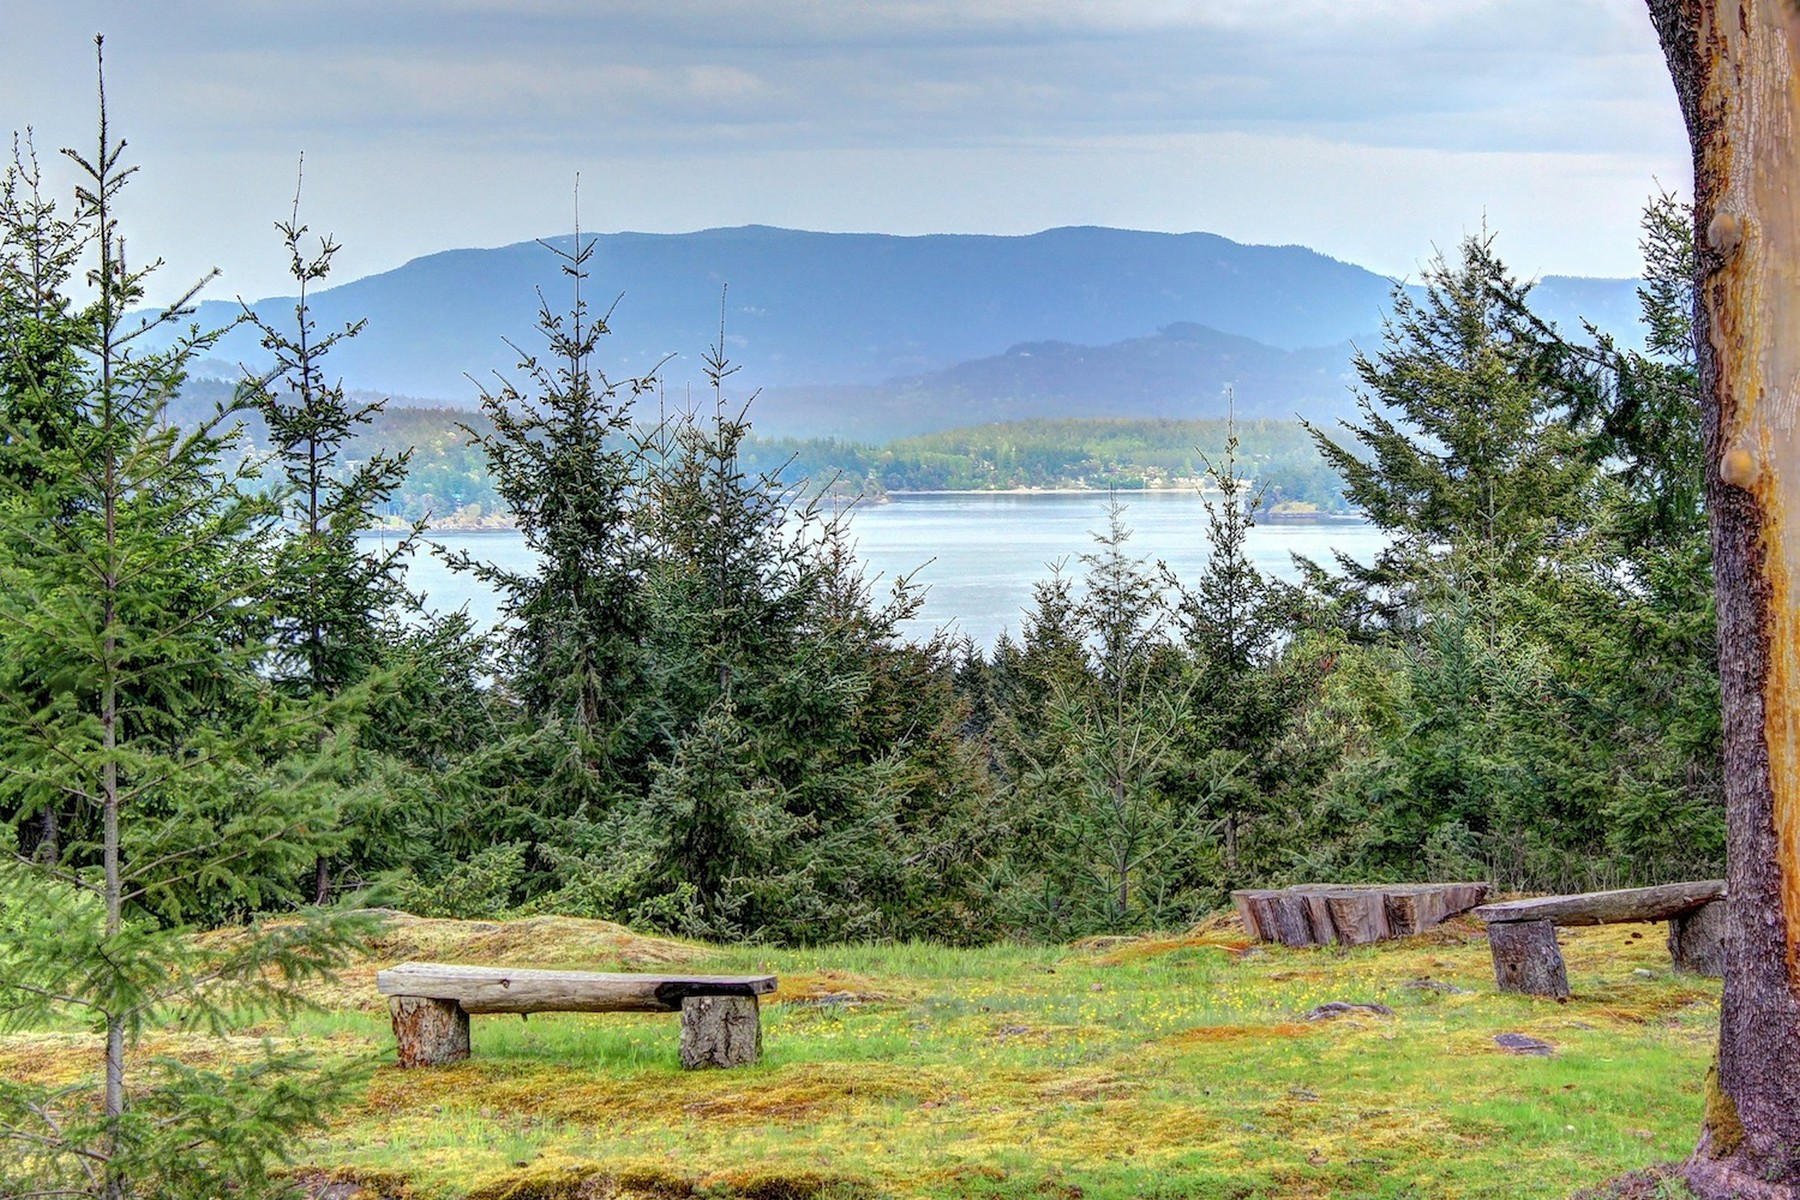 Đất đai vì Bán tại Spectacular 10 Acre Parcel with Views Dream Lake Road Friday Harbor, Washington, 98250 Hoa Kỳ